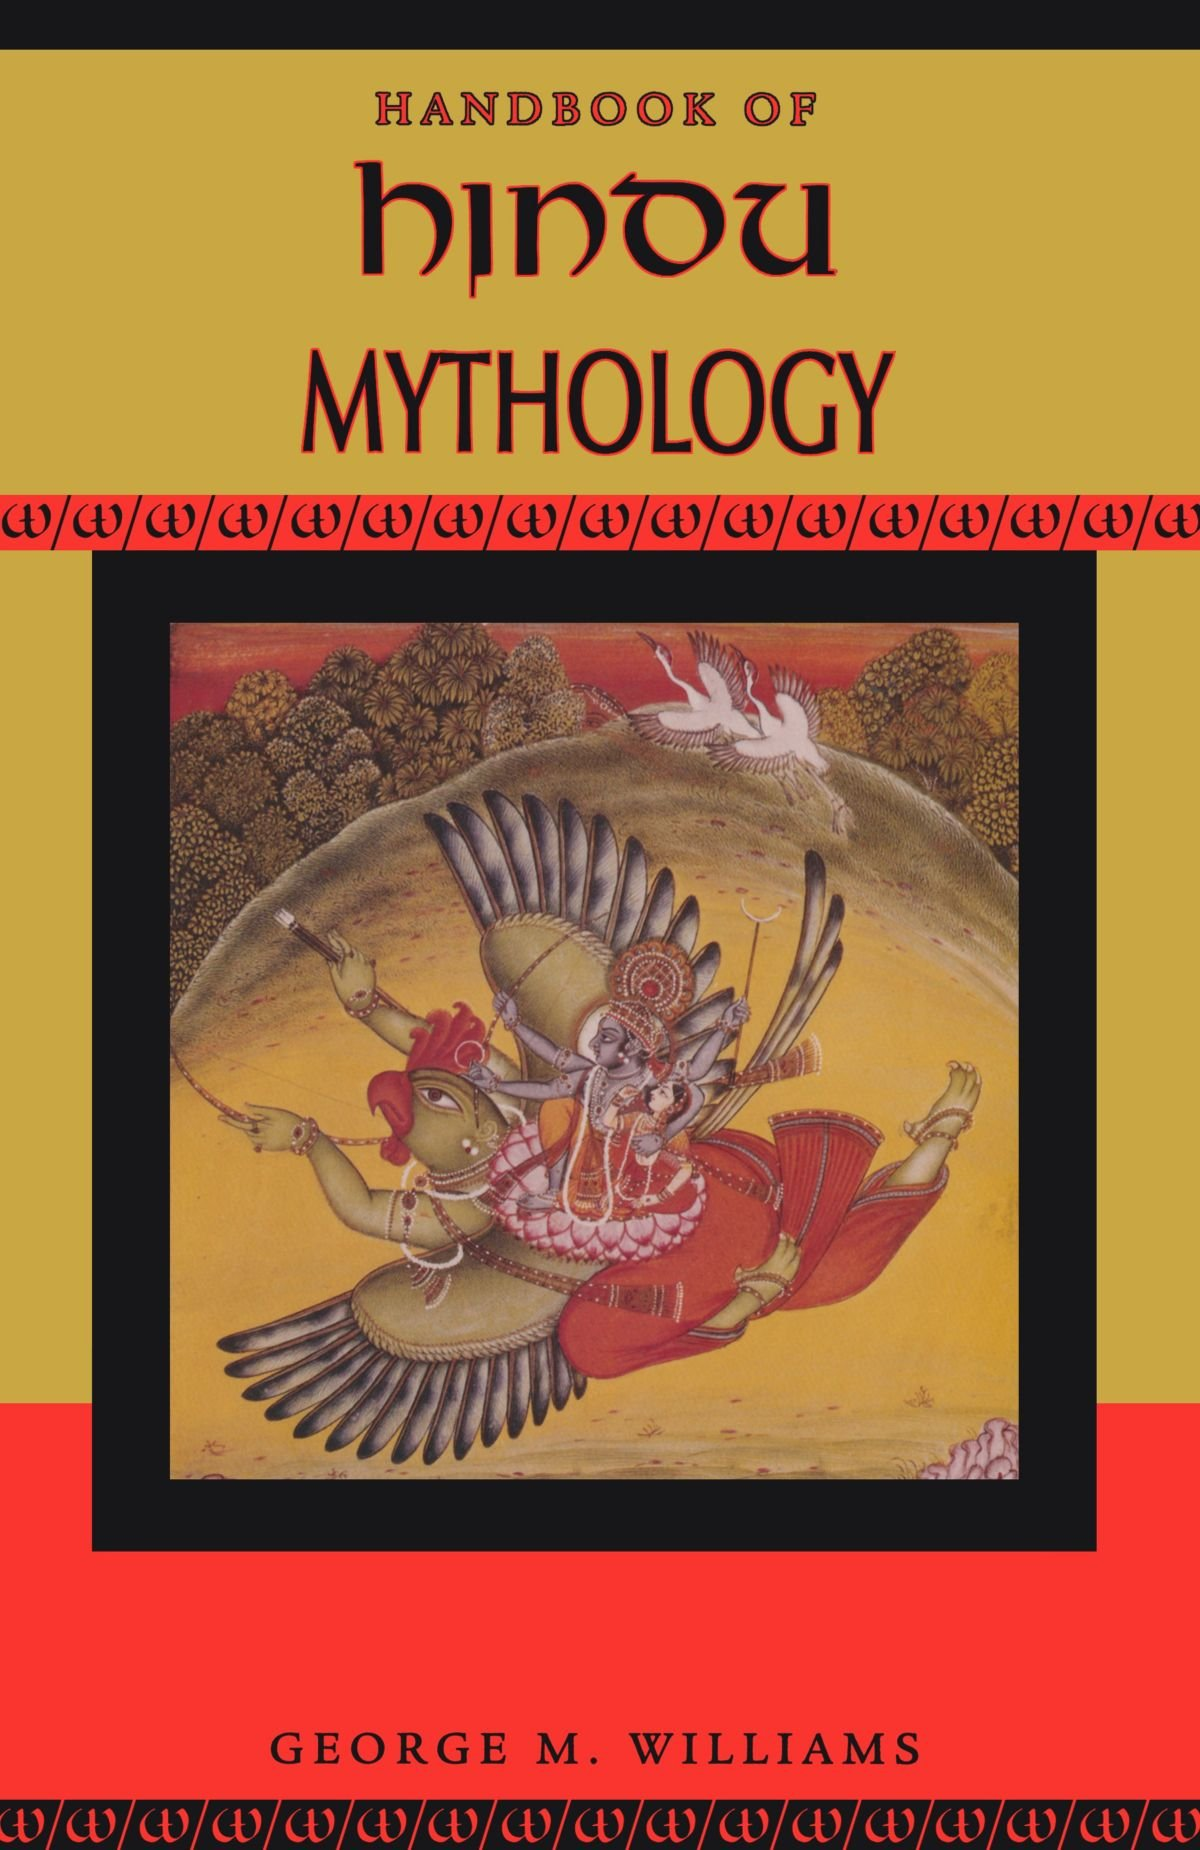 Handbook of Hindu Mythology (Handbooks of World Mythology)